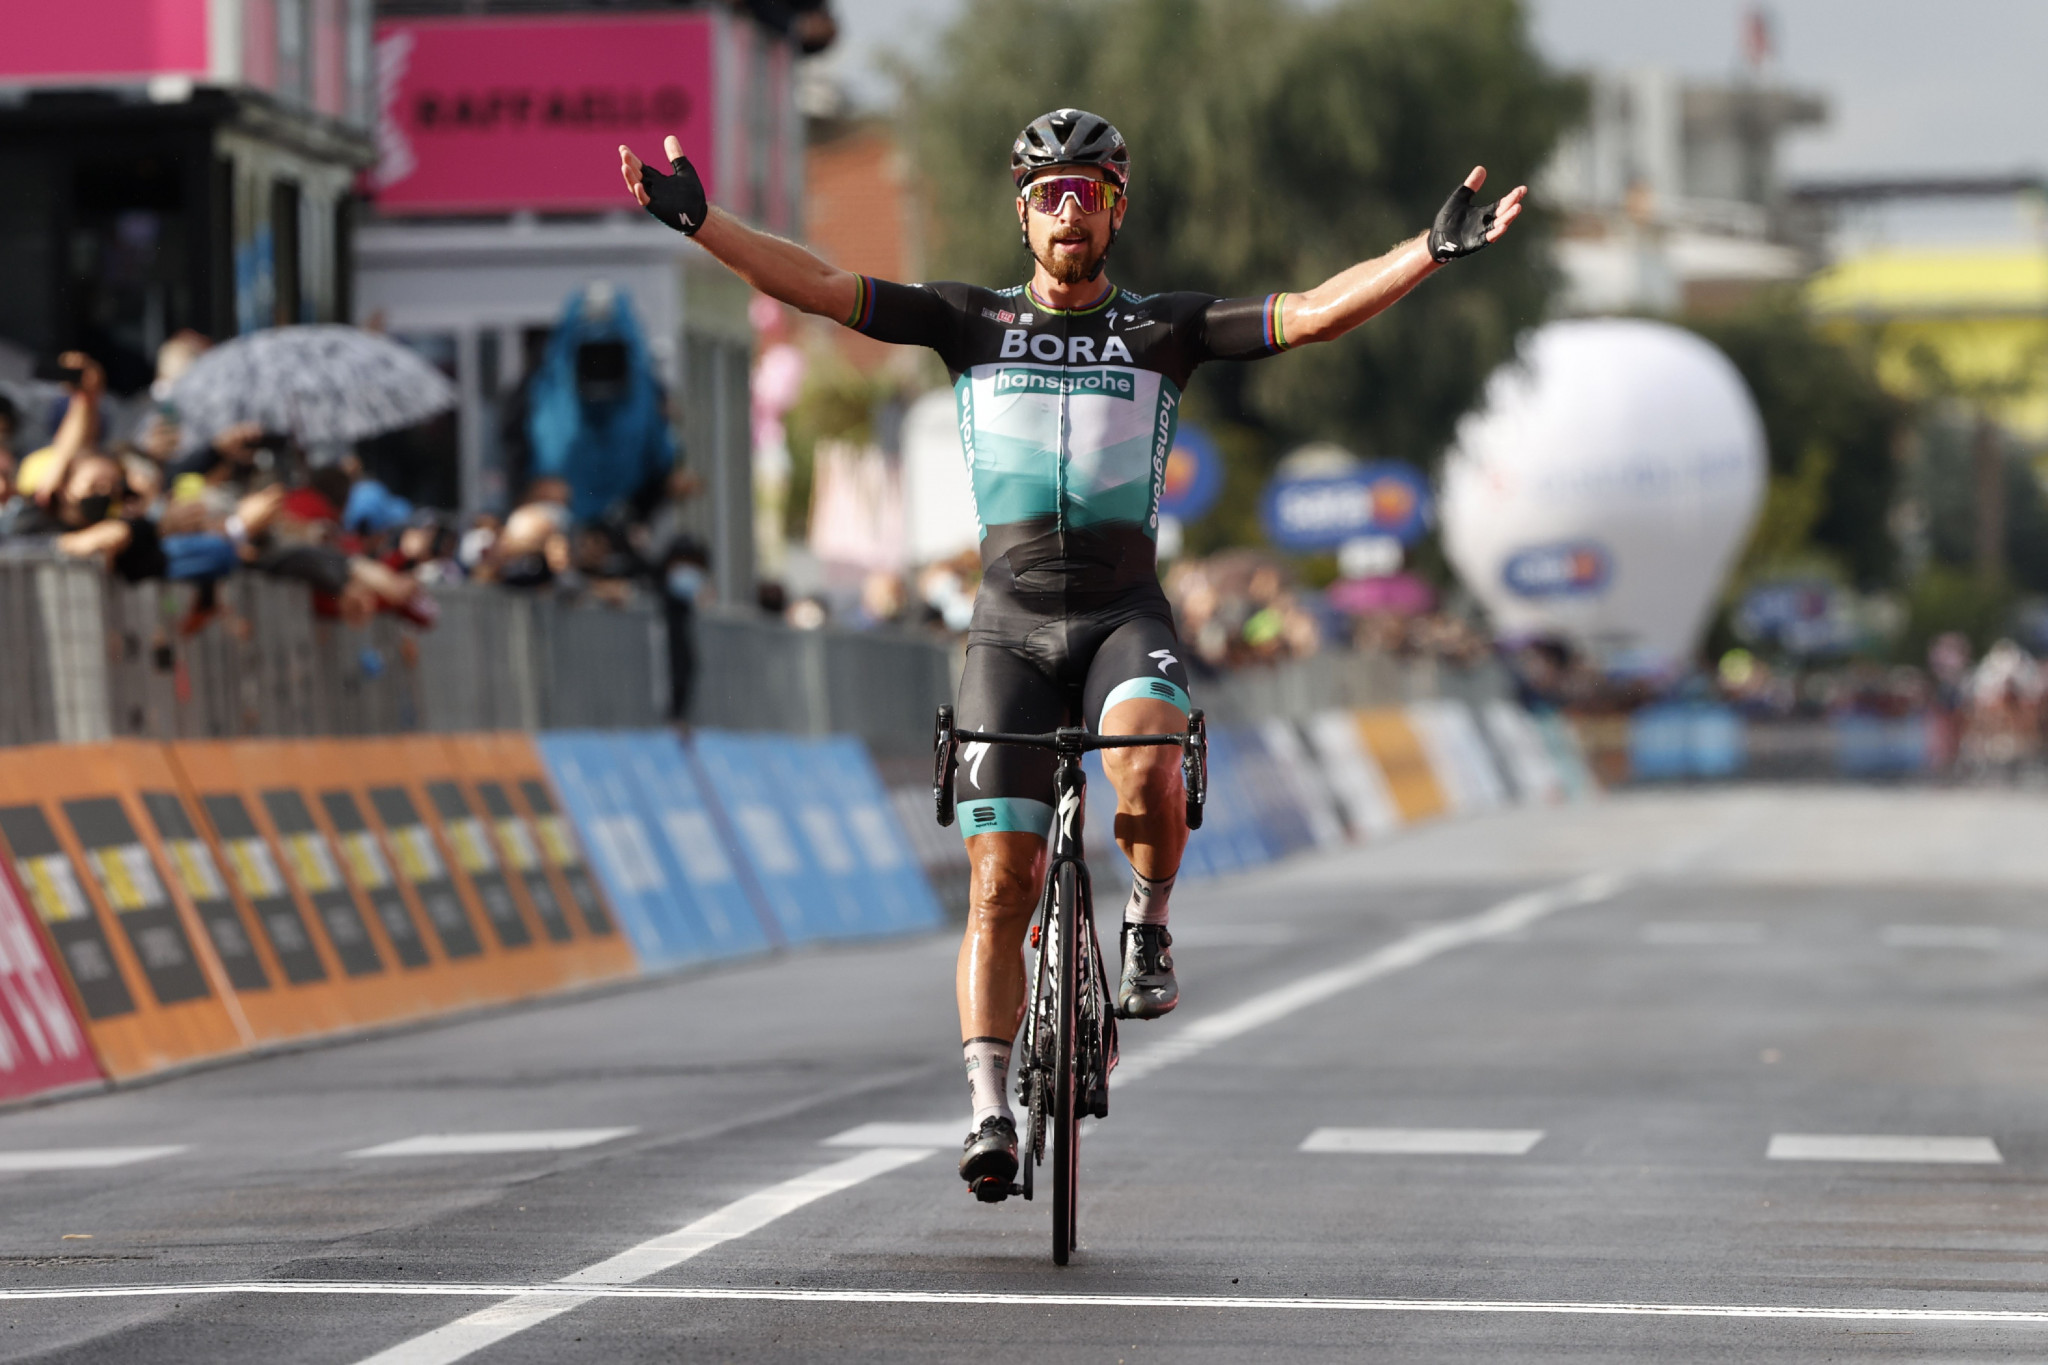 Sagan solos to win first Giro d'Italia stage after attack from breakaway